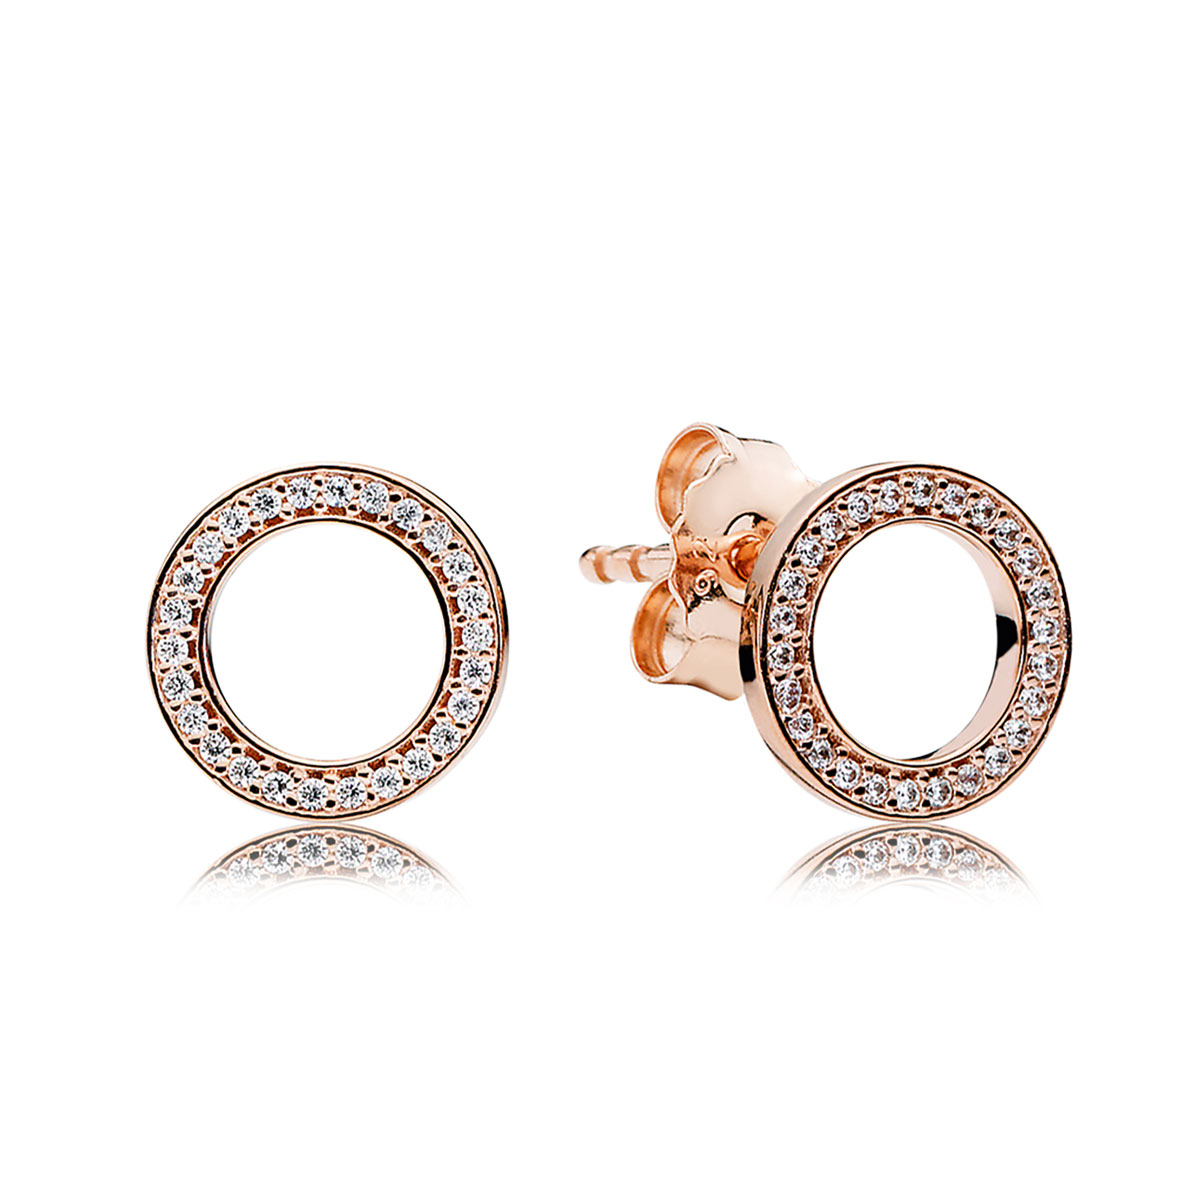 58a0dc729 ... pandora rose forever pandora with clear cz earrings DAZZLING DROPLETS  ...